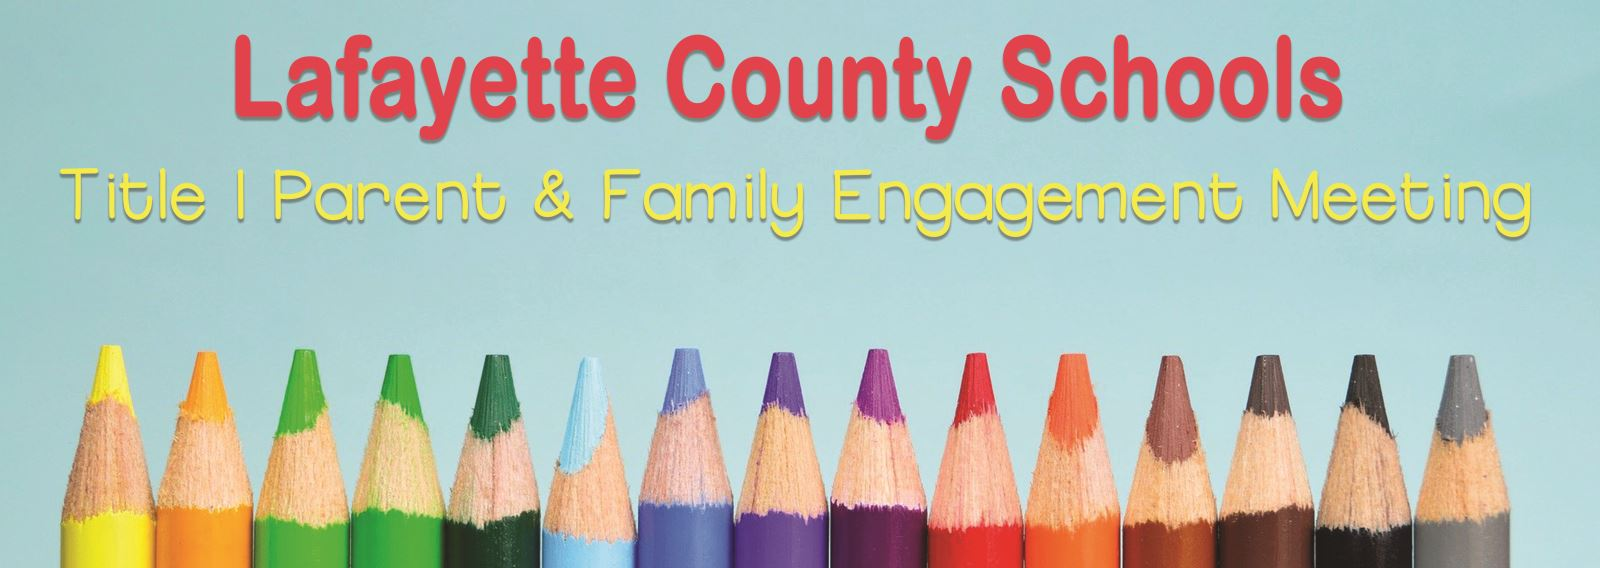 Lafayette County Schools Parent & Family Engagement Meeting